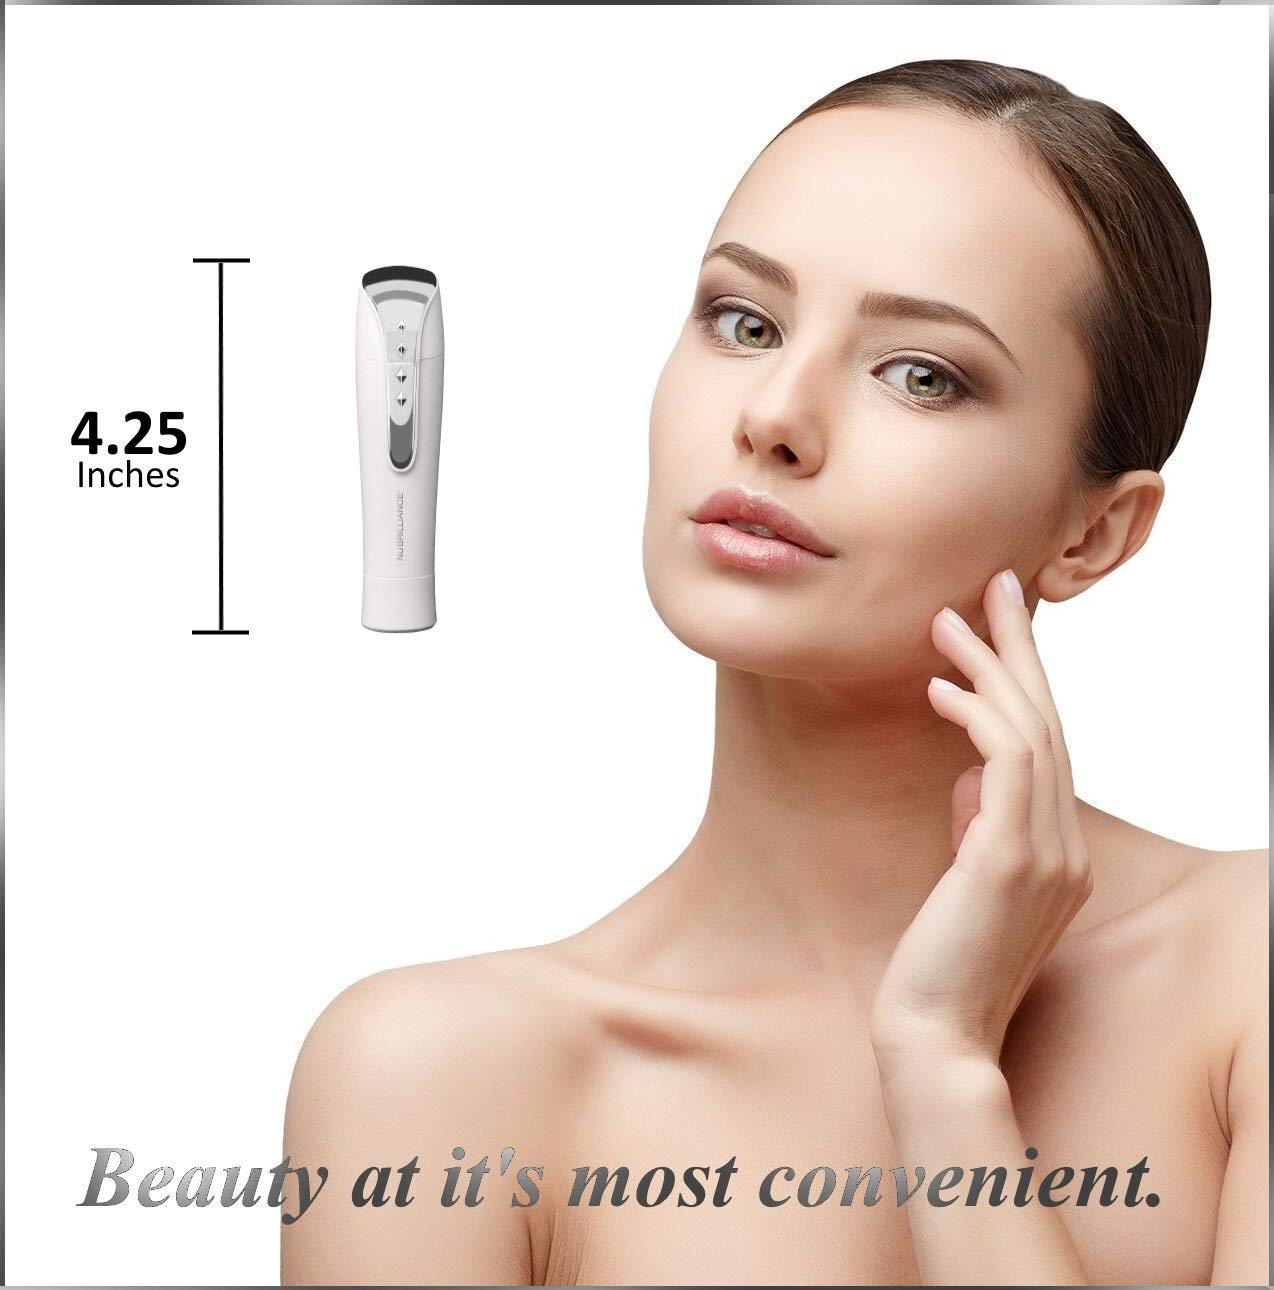 Ultimate Painless Hair Remover / Epilator for Women